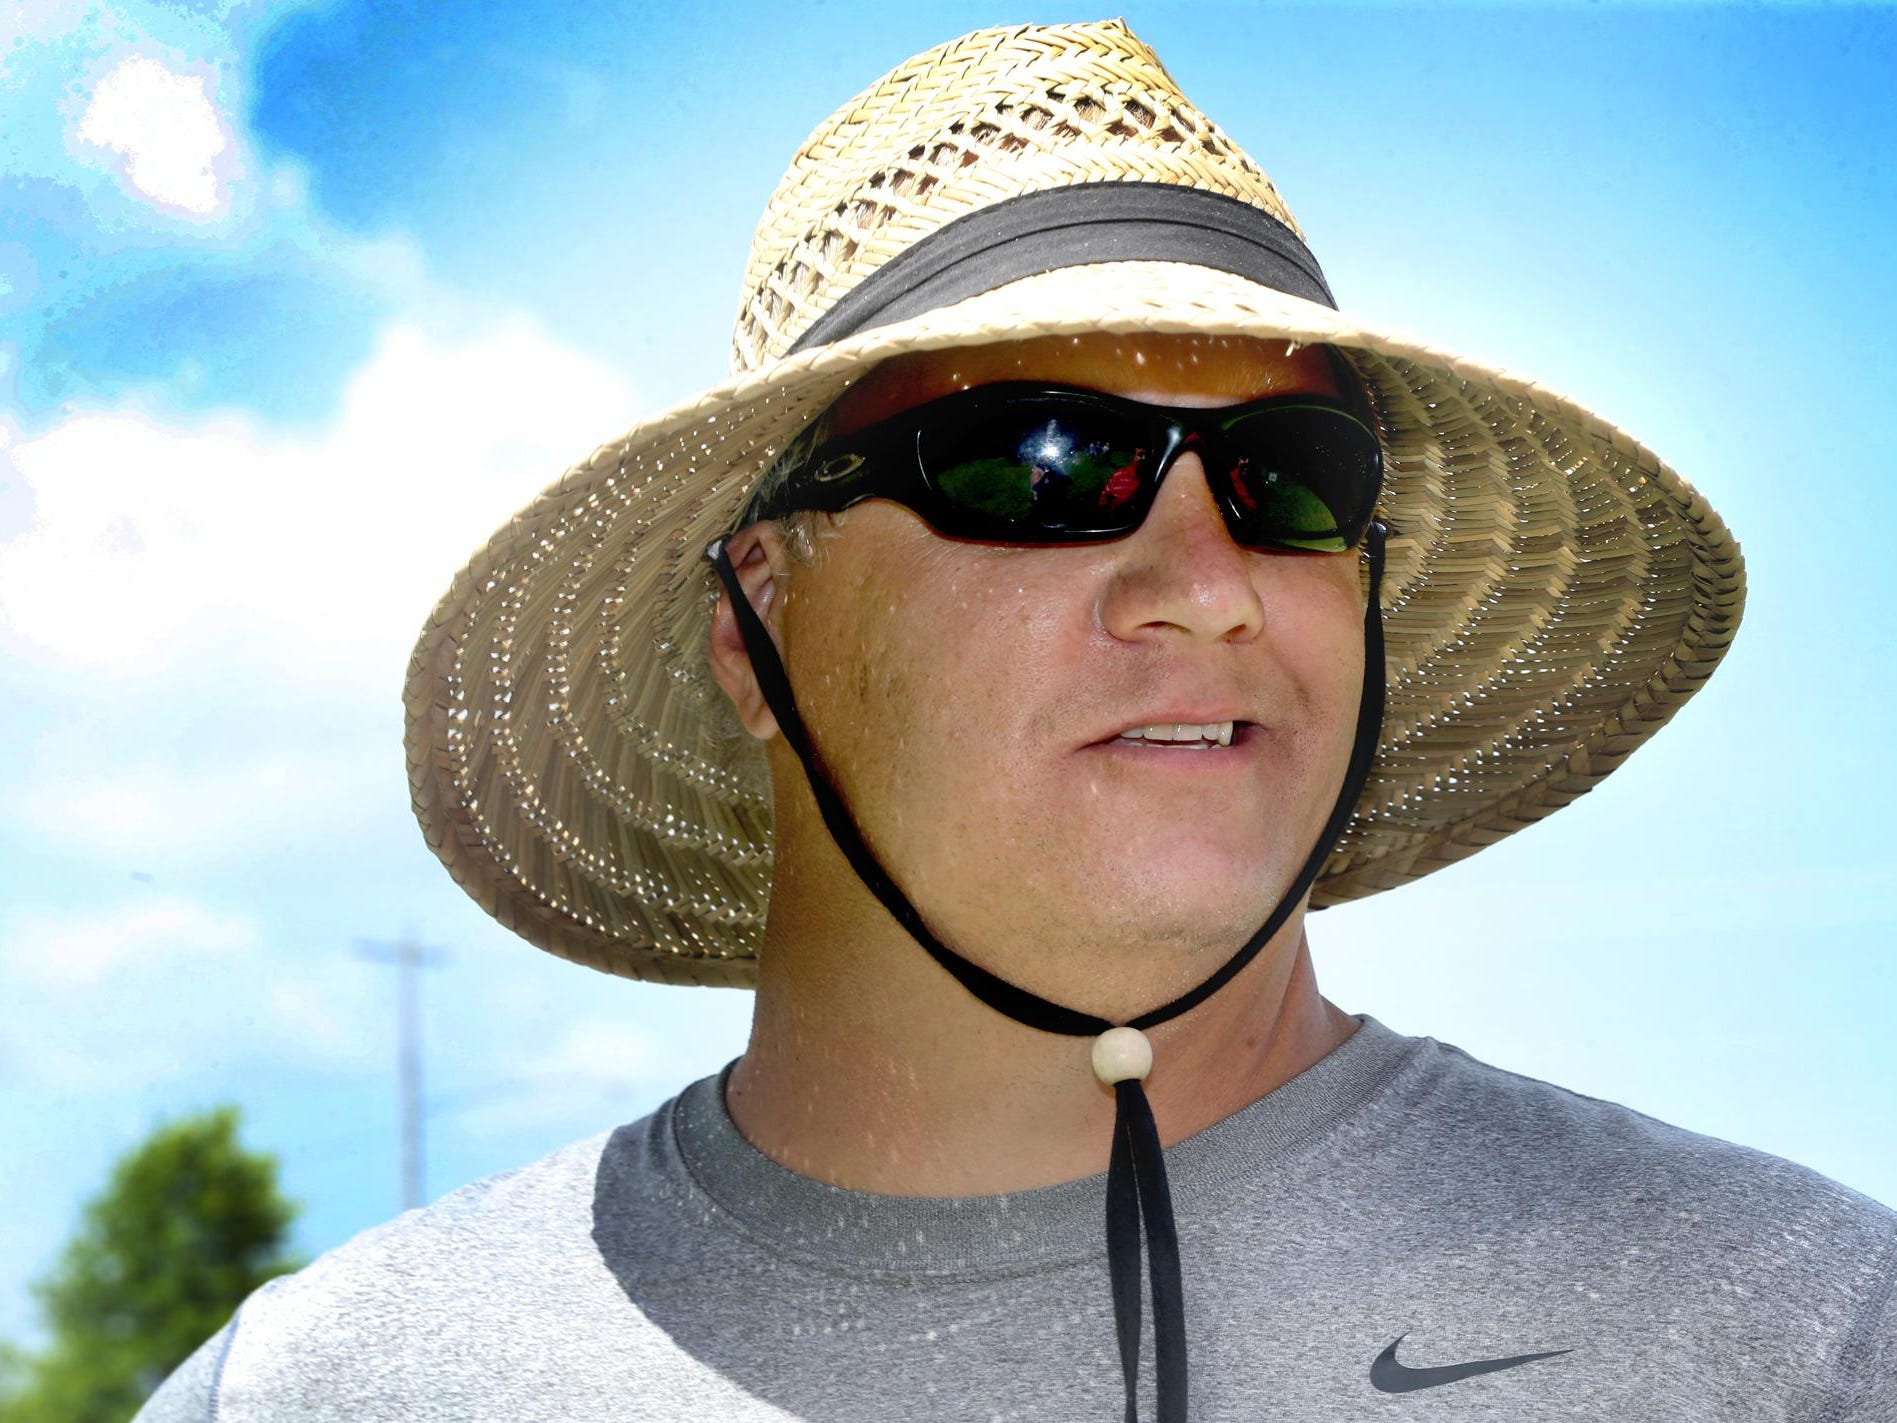 David Watson, the new head coach of the Blackman High School football team, tries to stay cool and out of the sun under his big straw hat as the Blackman Blaze competes in the 7-on-7 Bojangles Passing Tournament on Thursday, July 9 at Riverdale High School in Murfreesboro.